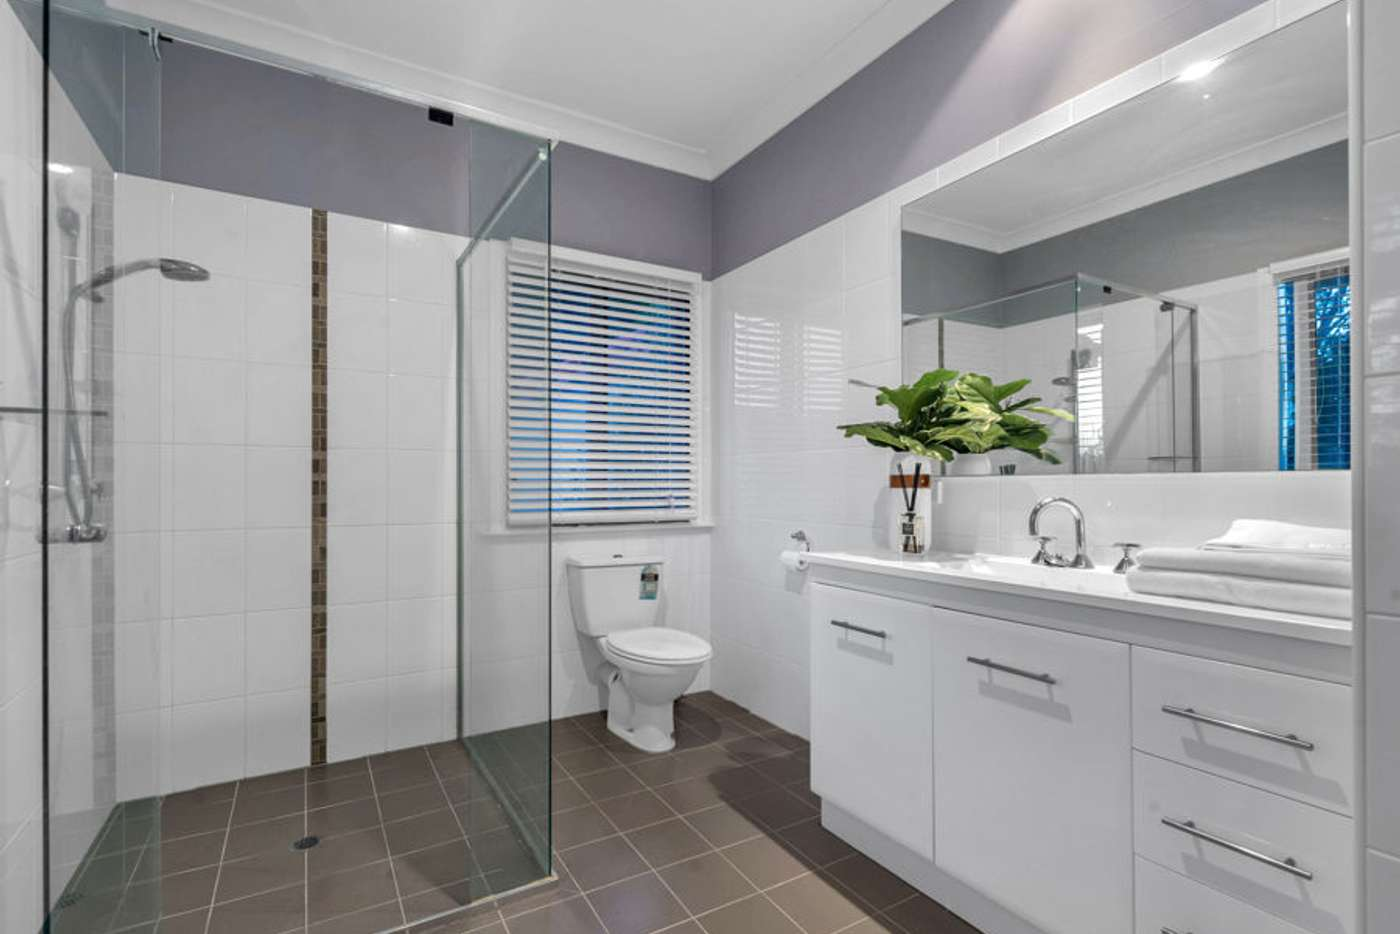 Fifth view of Homely house listing, 17 Gill Street, Holland Park QLD 4121